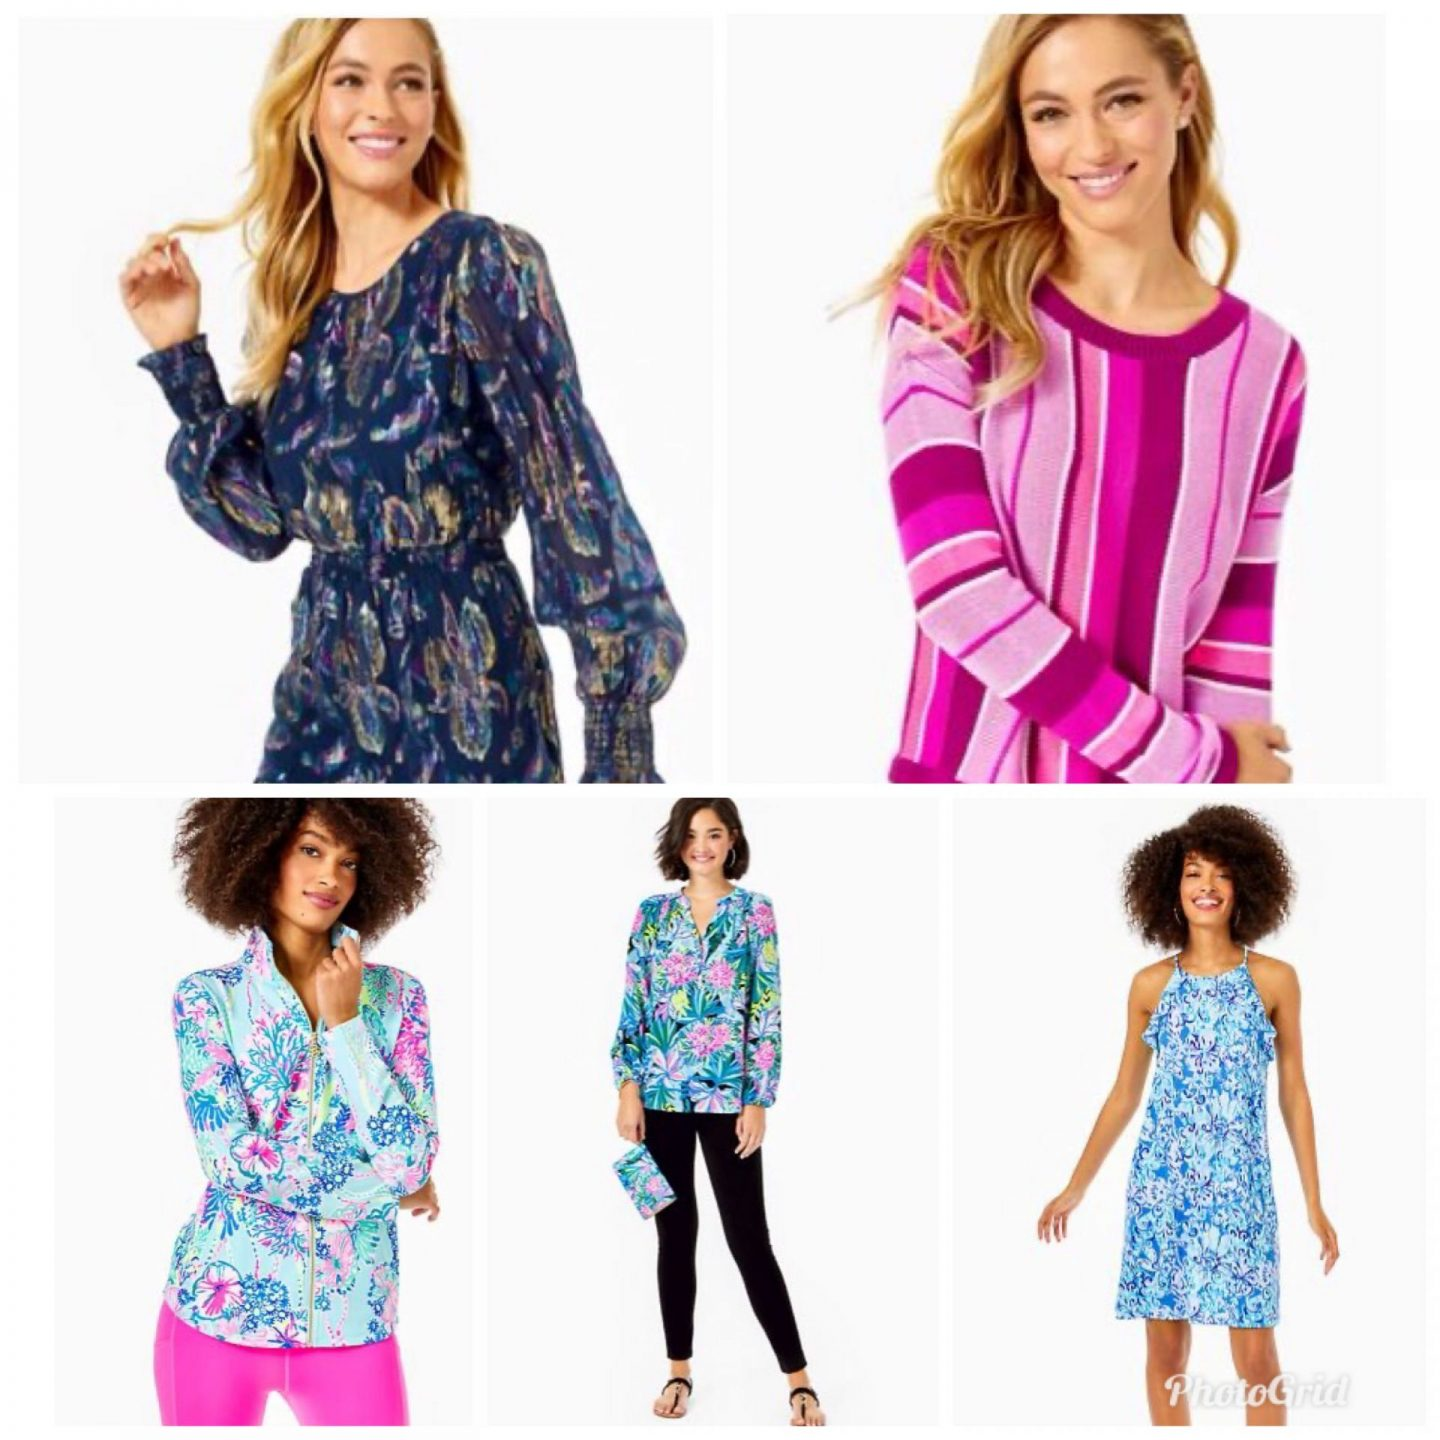 Lilly Pulitzer Sale by popular Kentucky fashion blog, Really Rynetta: collage image of women wearing Lilly Pulitzer clothing.